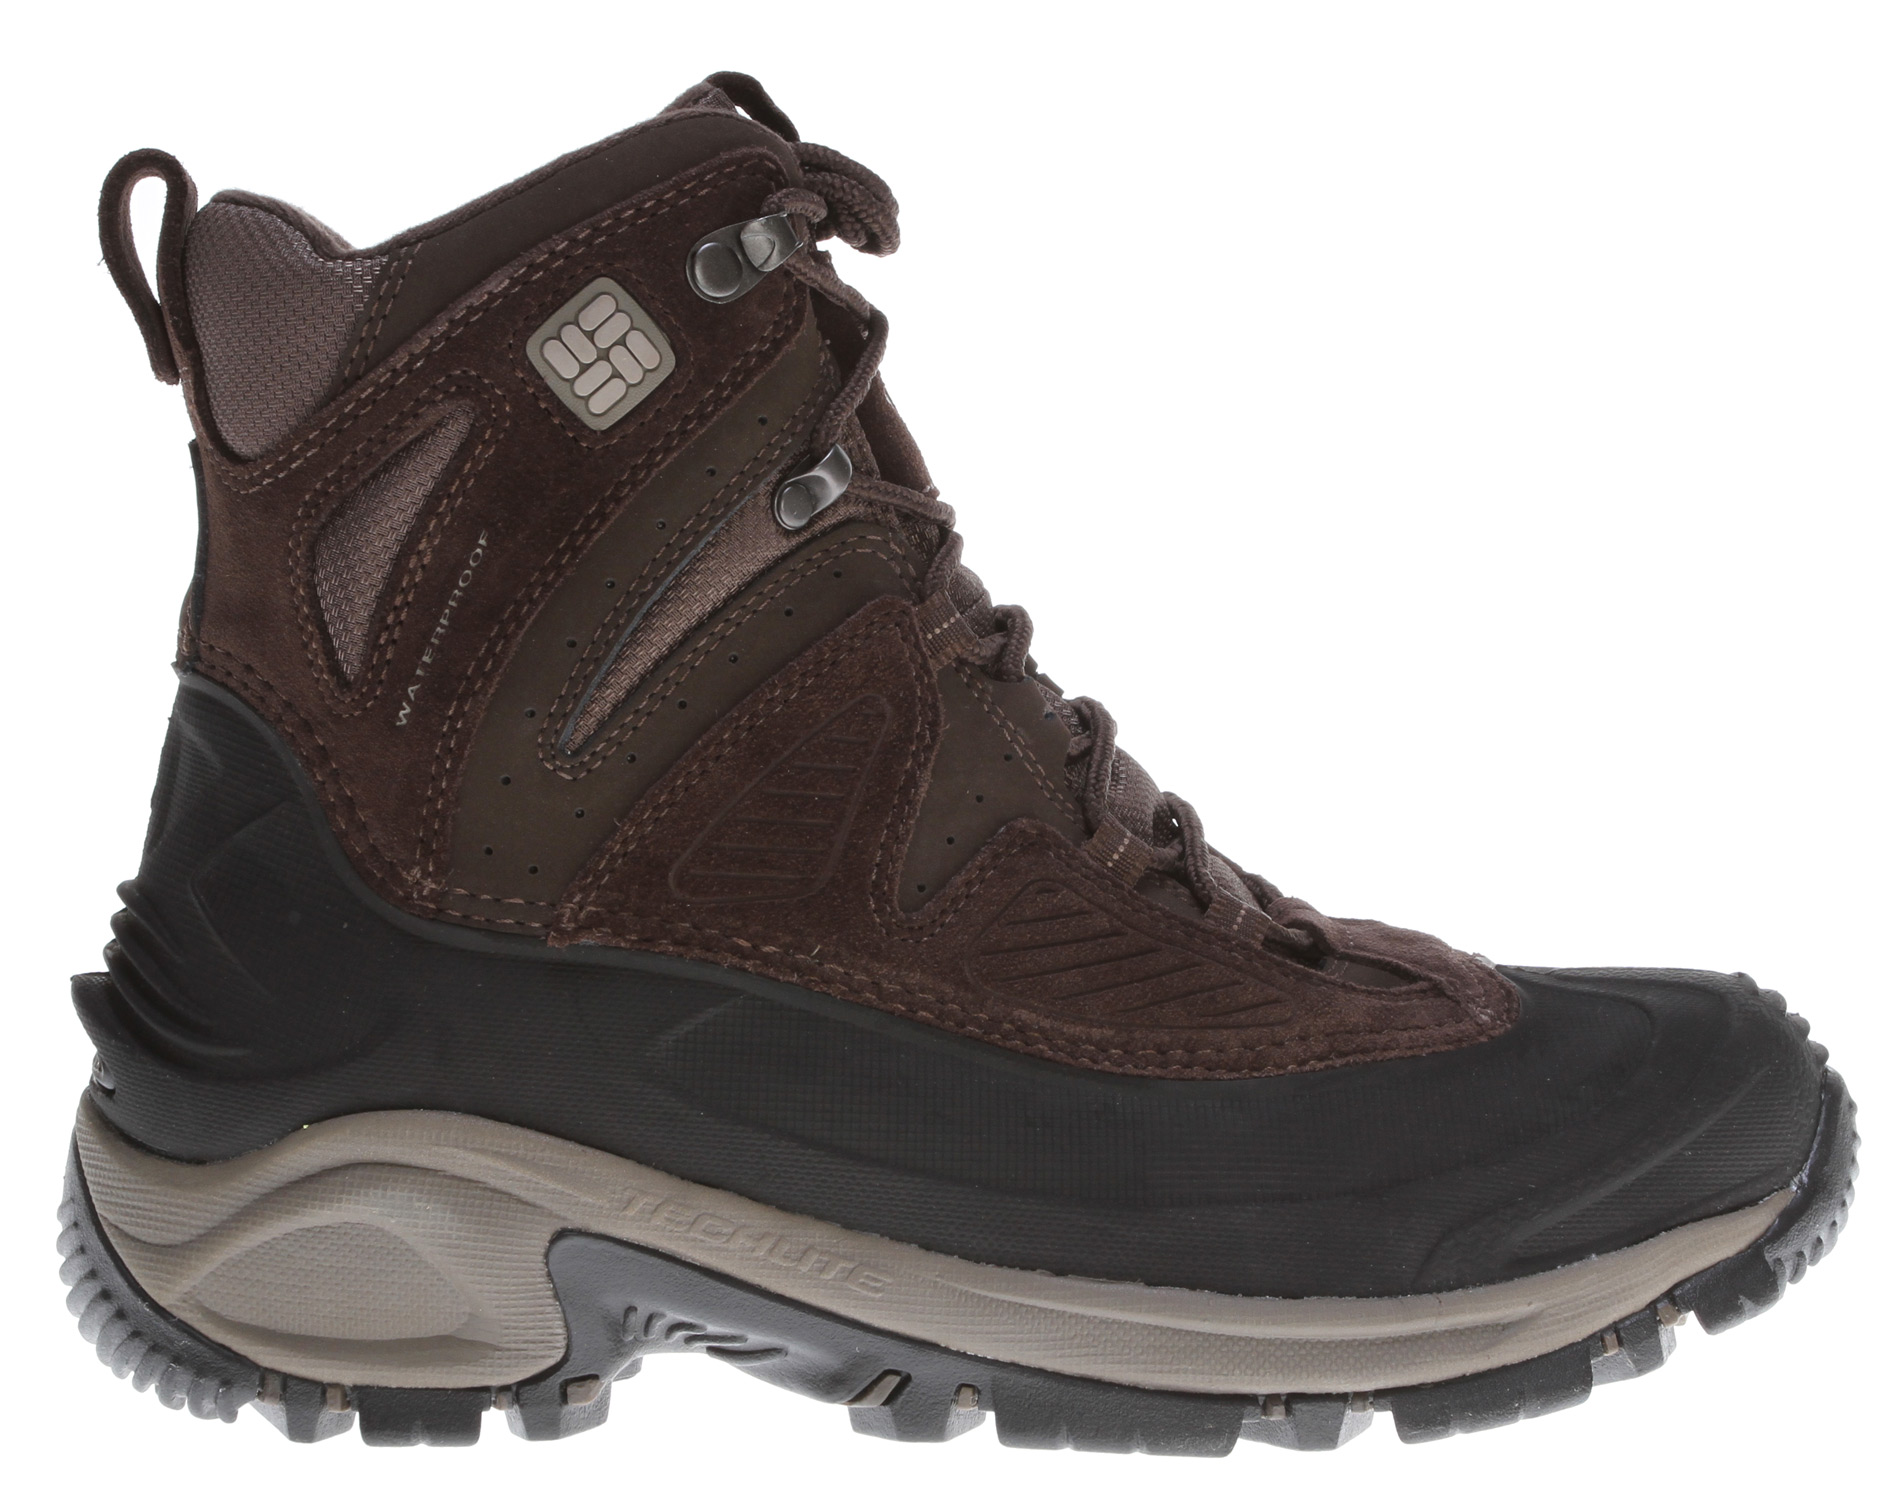 Key Features of the Columbia Snowtrek Boots: Combination Upper with injection molded shell, insulation, and waterproof leather Insulation is 200 grams and rated -25F/-32C. Full length Techlite midsole for lightweight cushioning Dual density Omni Grip outsole. - $70.95